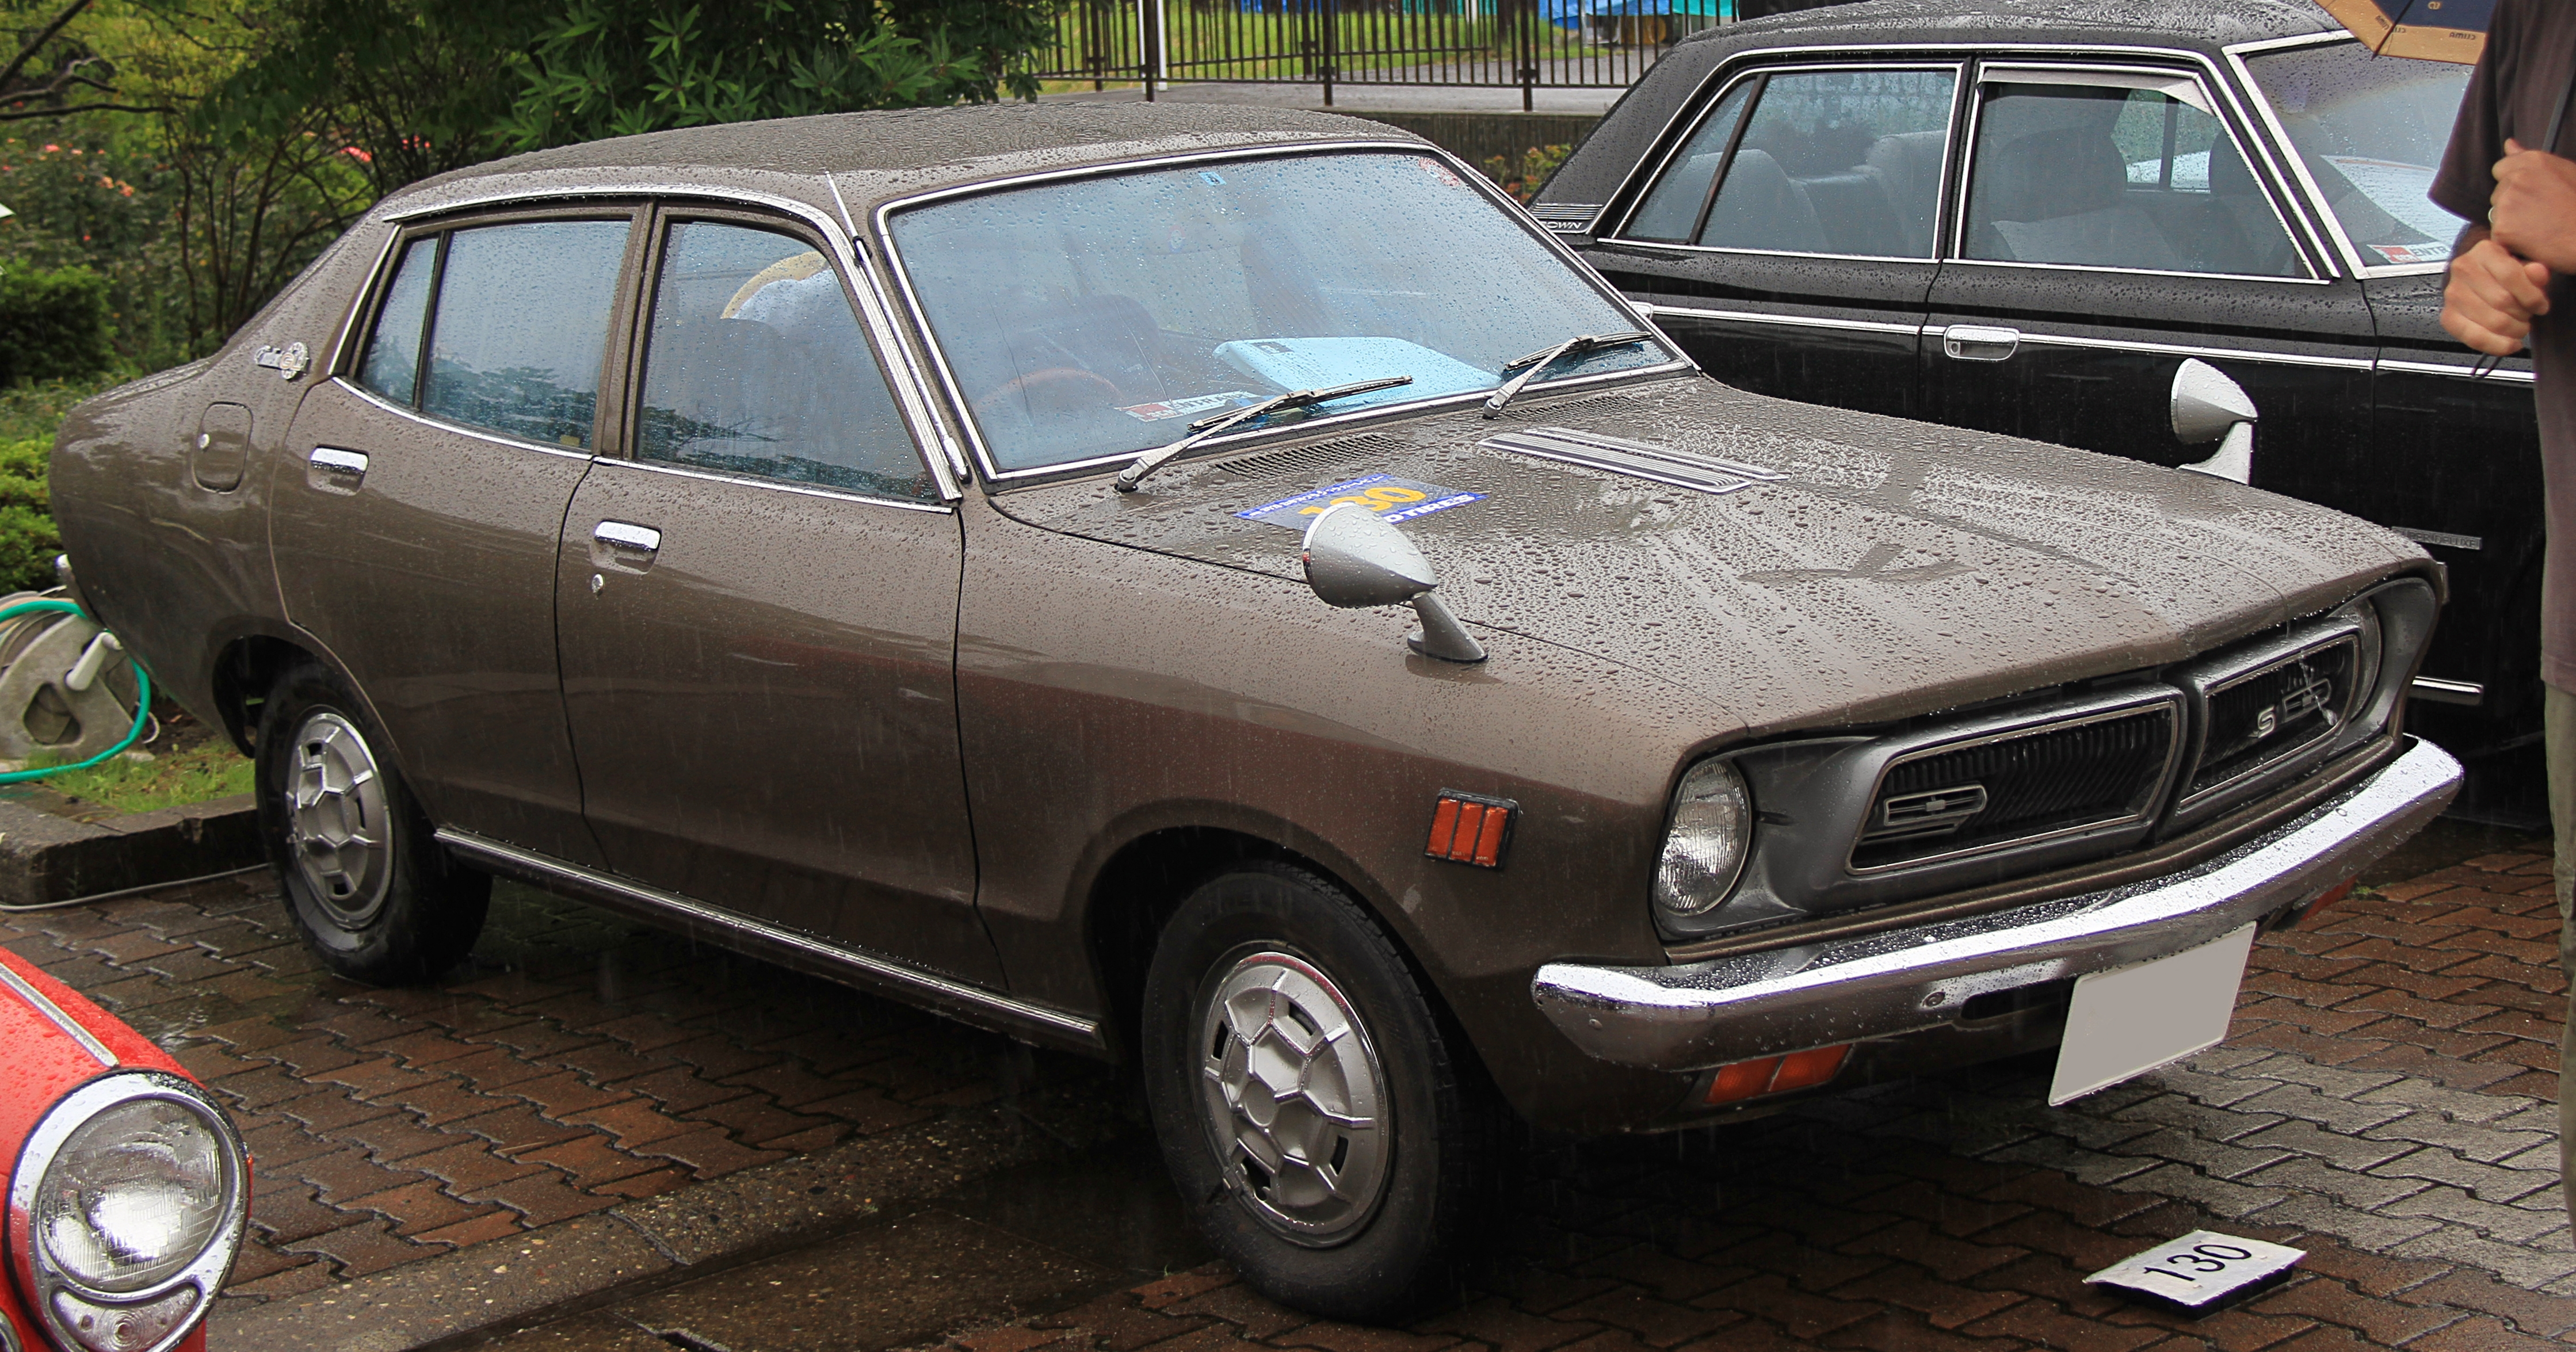 Imcdb Org 1974 Datsun Sunny Excellent 1 4 Gl Pb210 In Quot Uch 251 Keiji Shaider 1984 1985 Quot